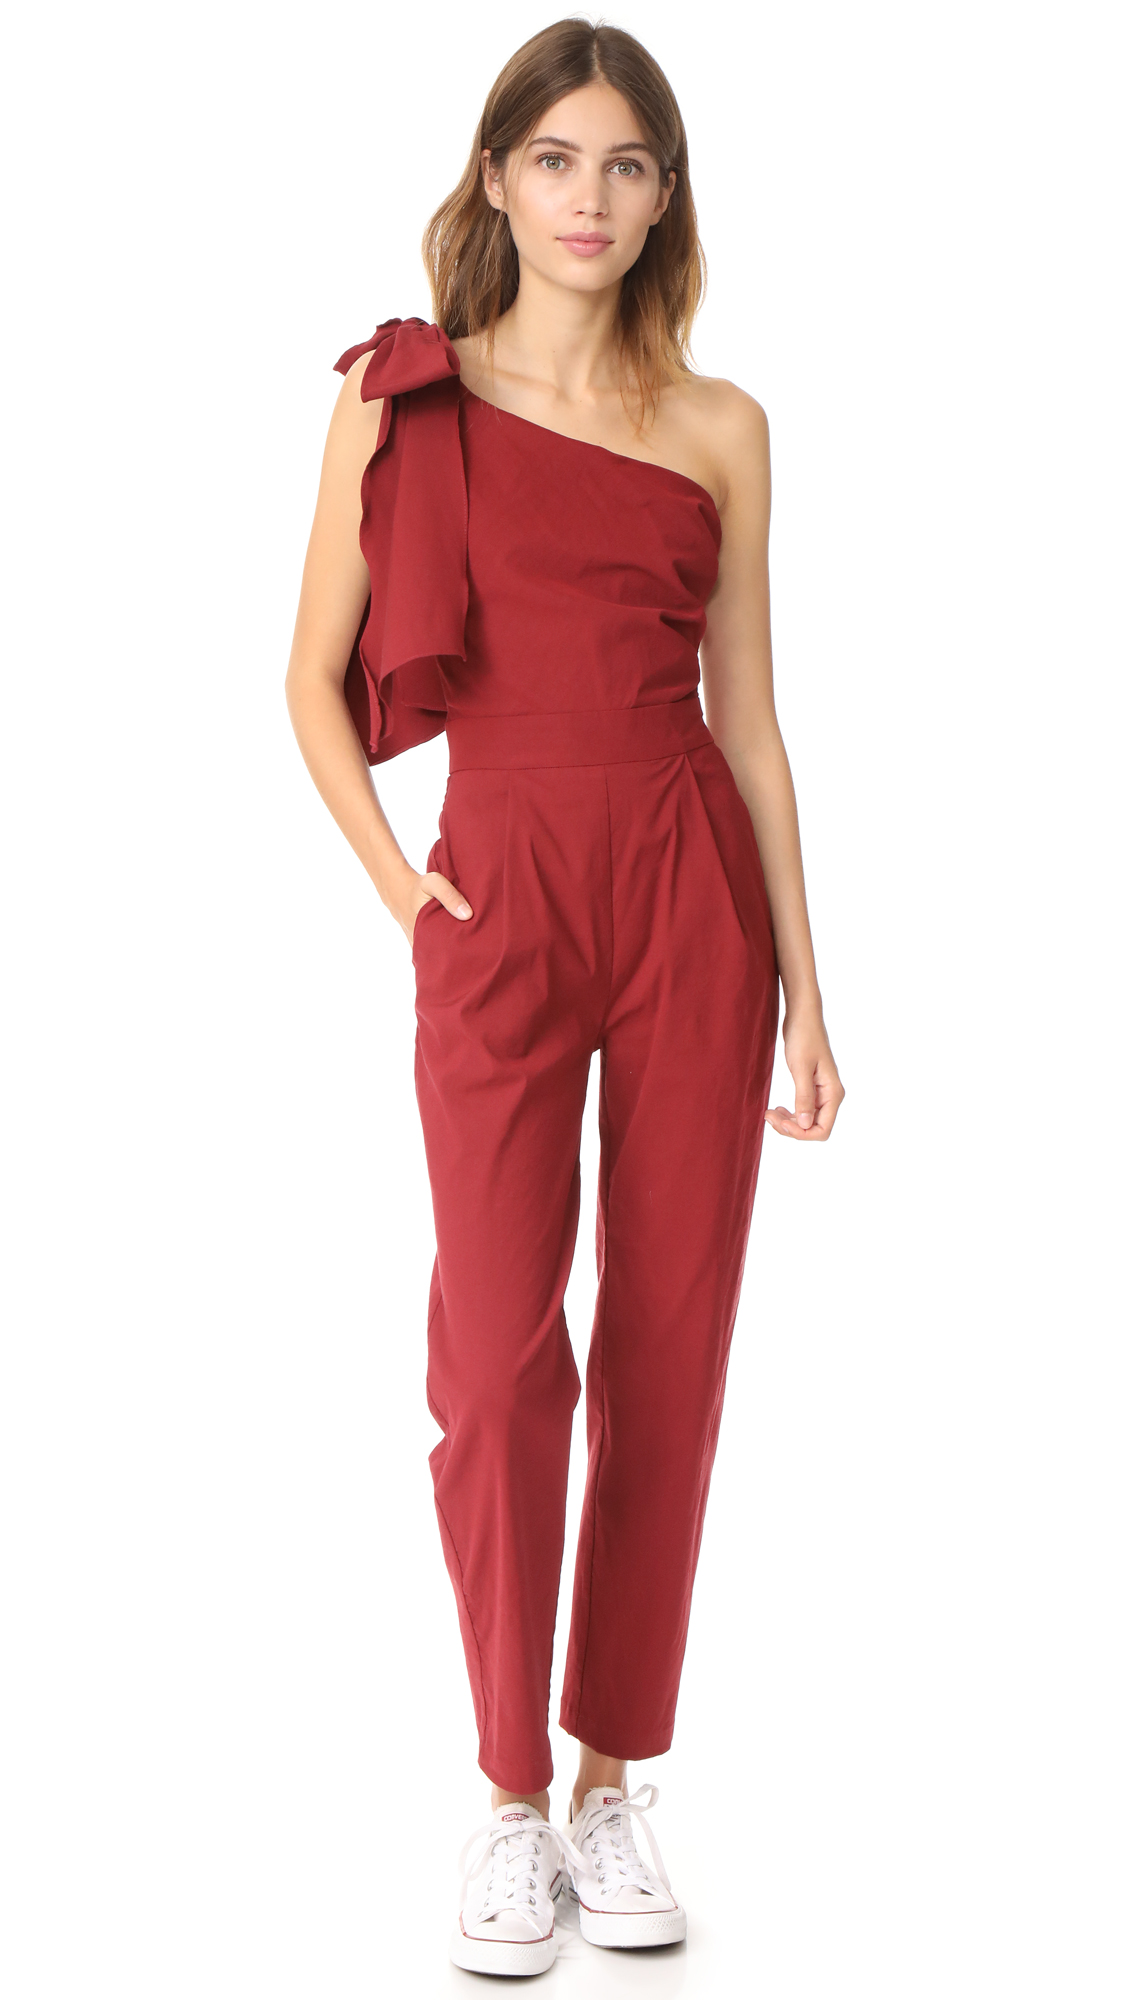 Sea Obi Tie Jumpsuit - Burgundy